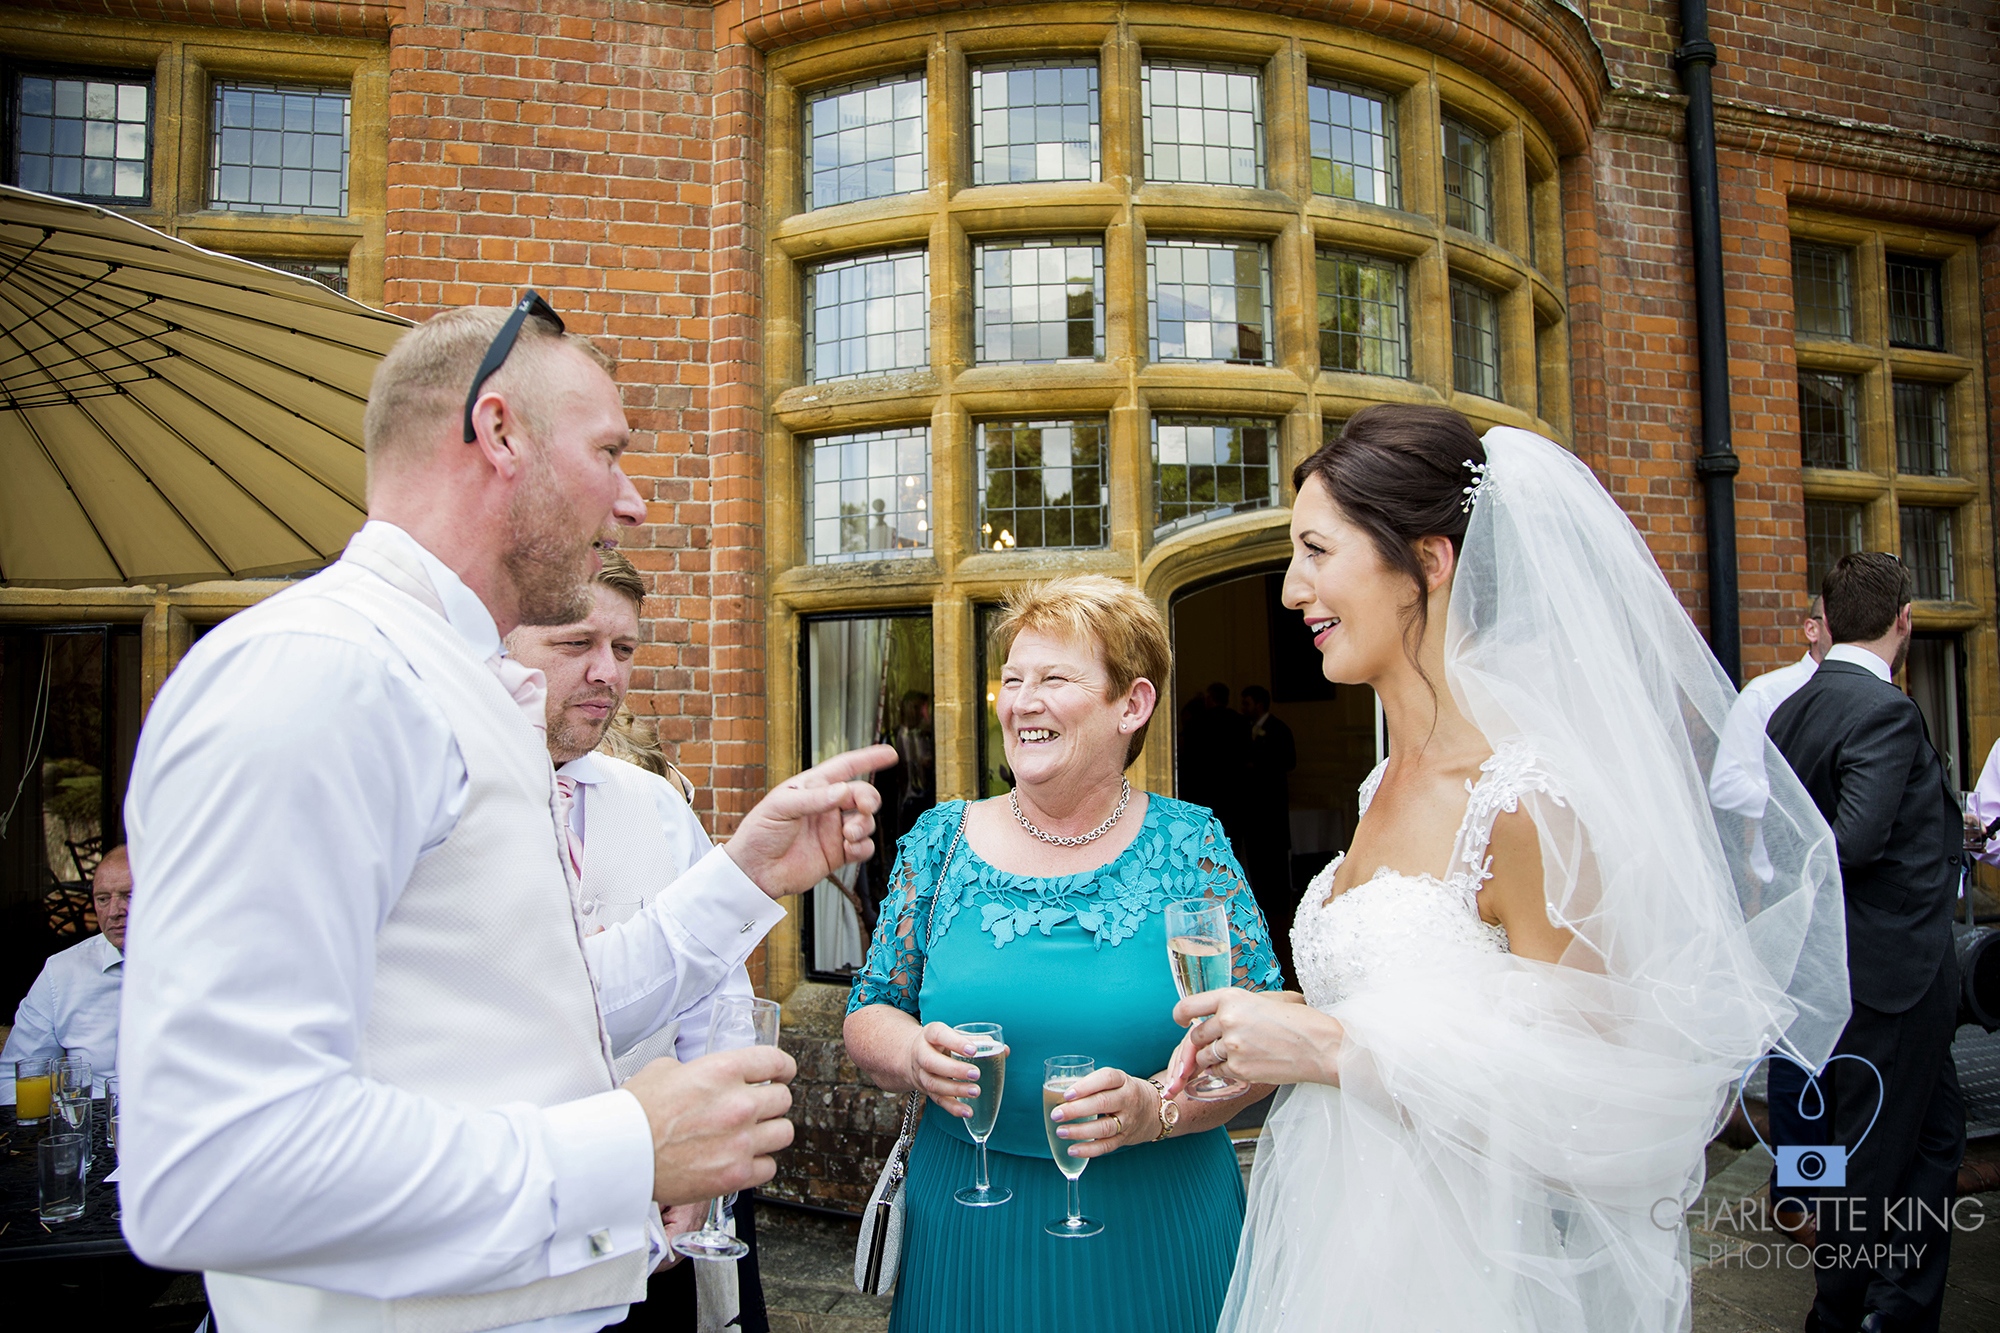 Woldingham-school-wedding-charlotte-king-photography (113)